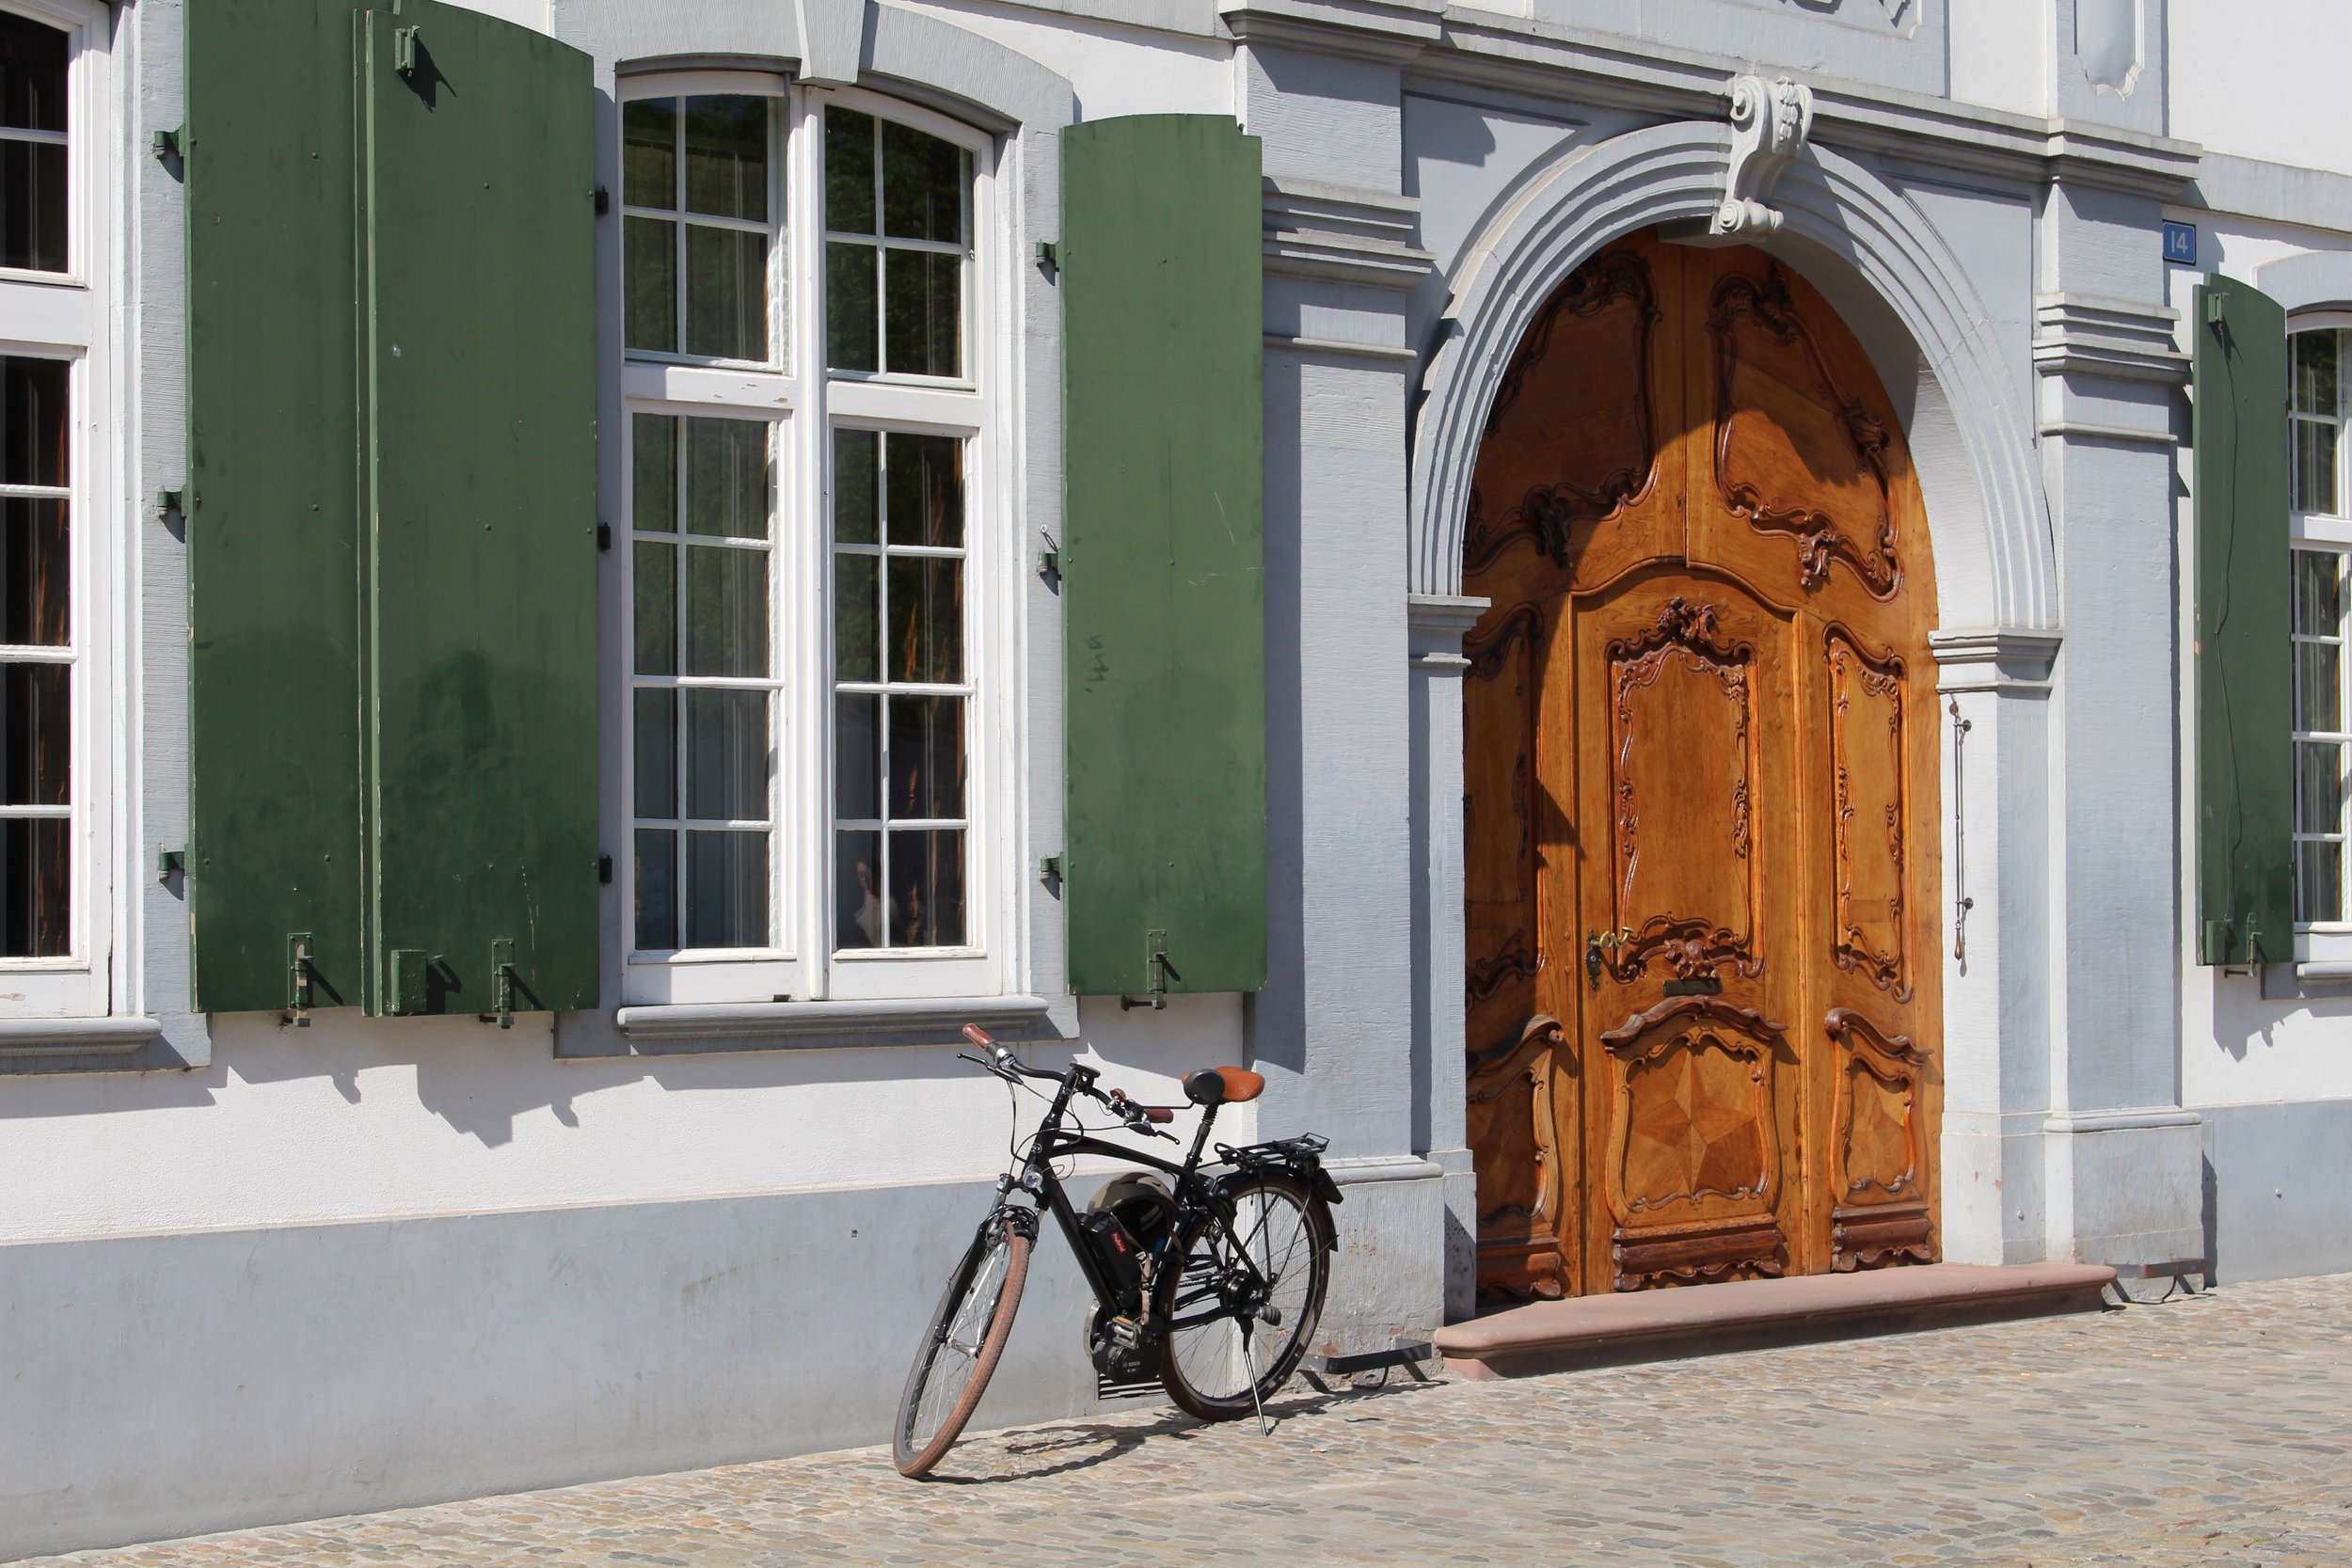 I have a thing for bikes, and beautiful doors...